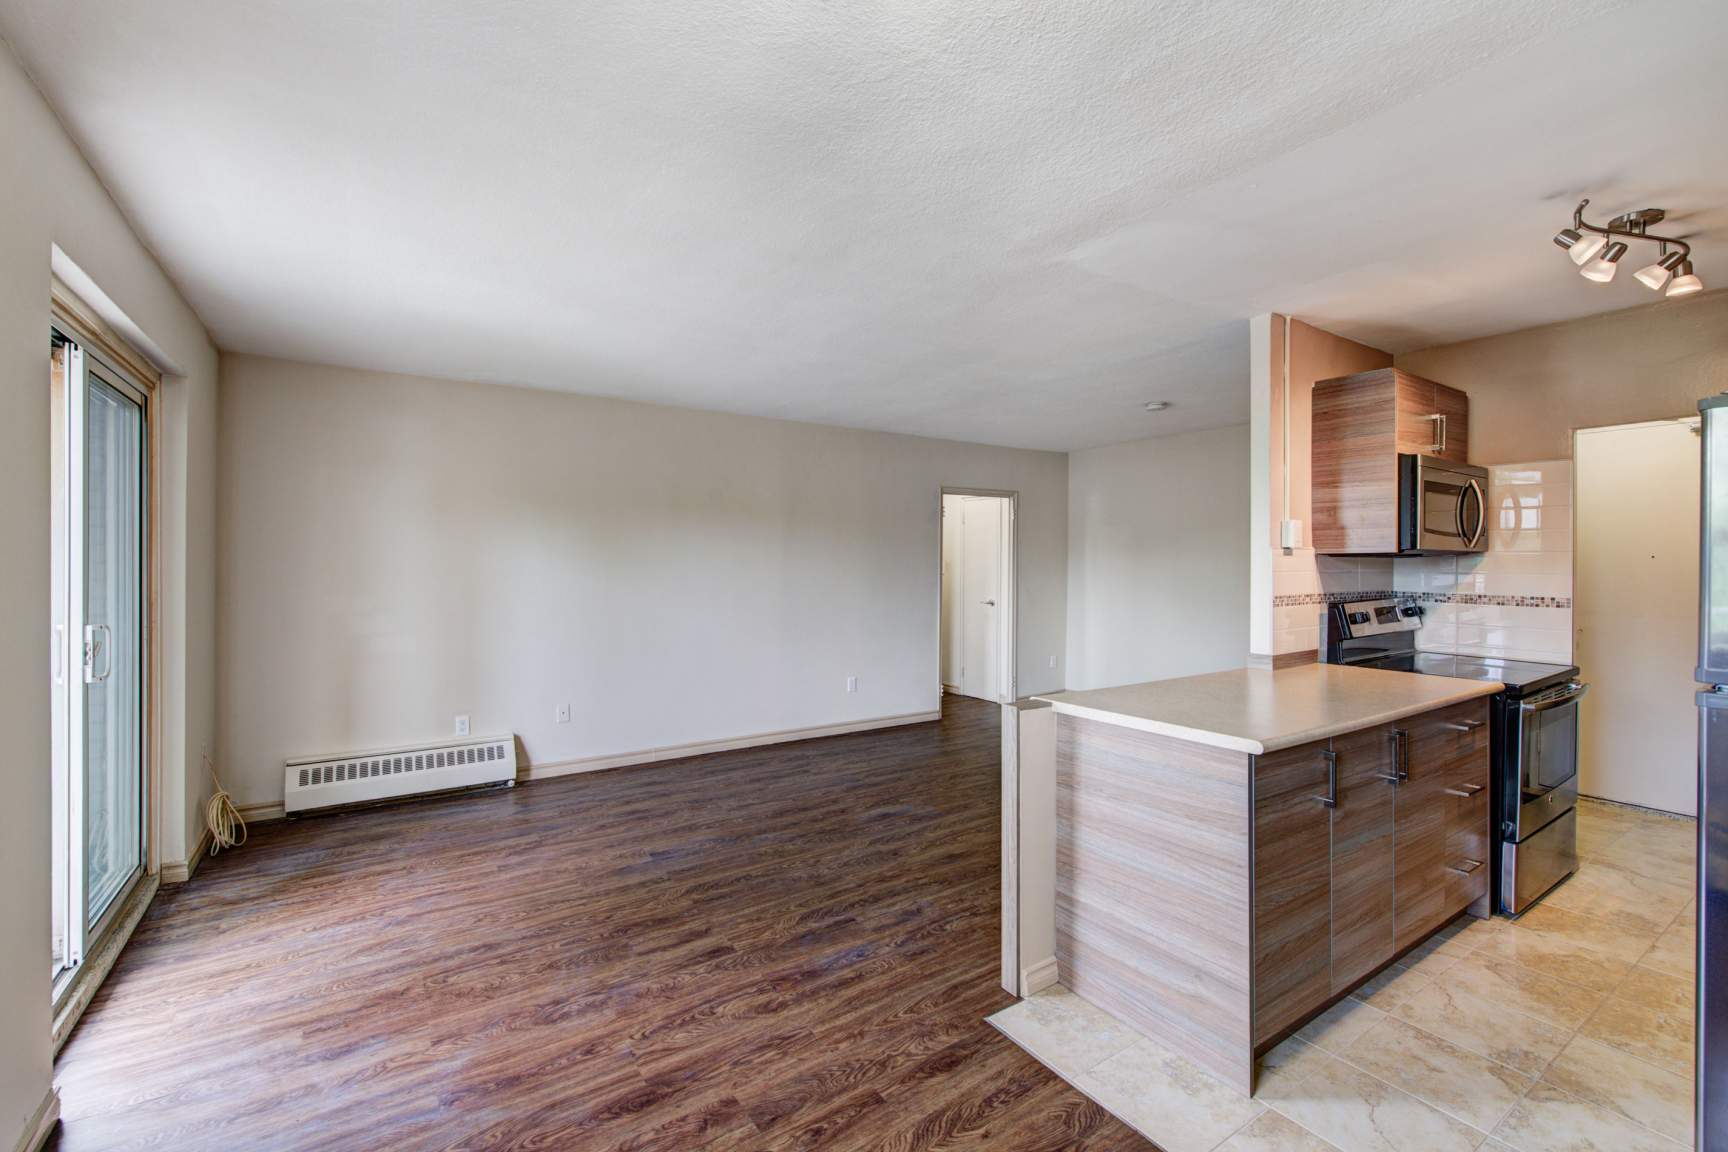 Studio / Bachelor Apartments for rent in Toronto at Lake Promenade Community - Photo 12 - RentersPages – L400279